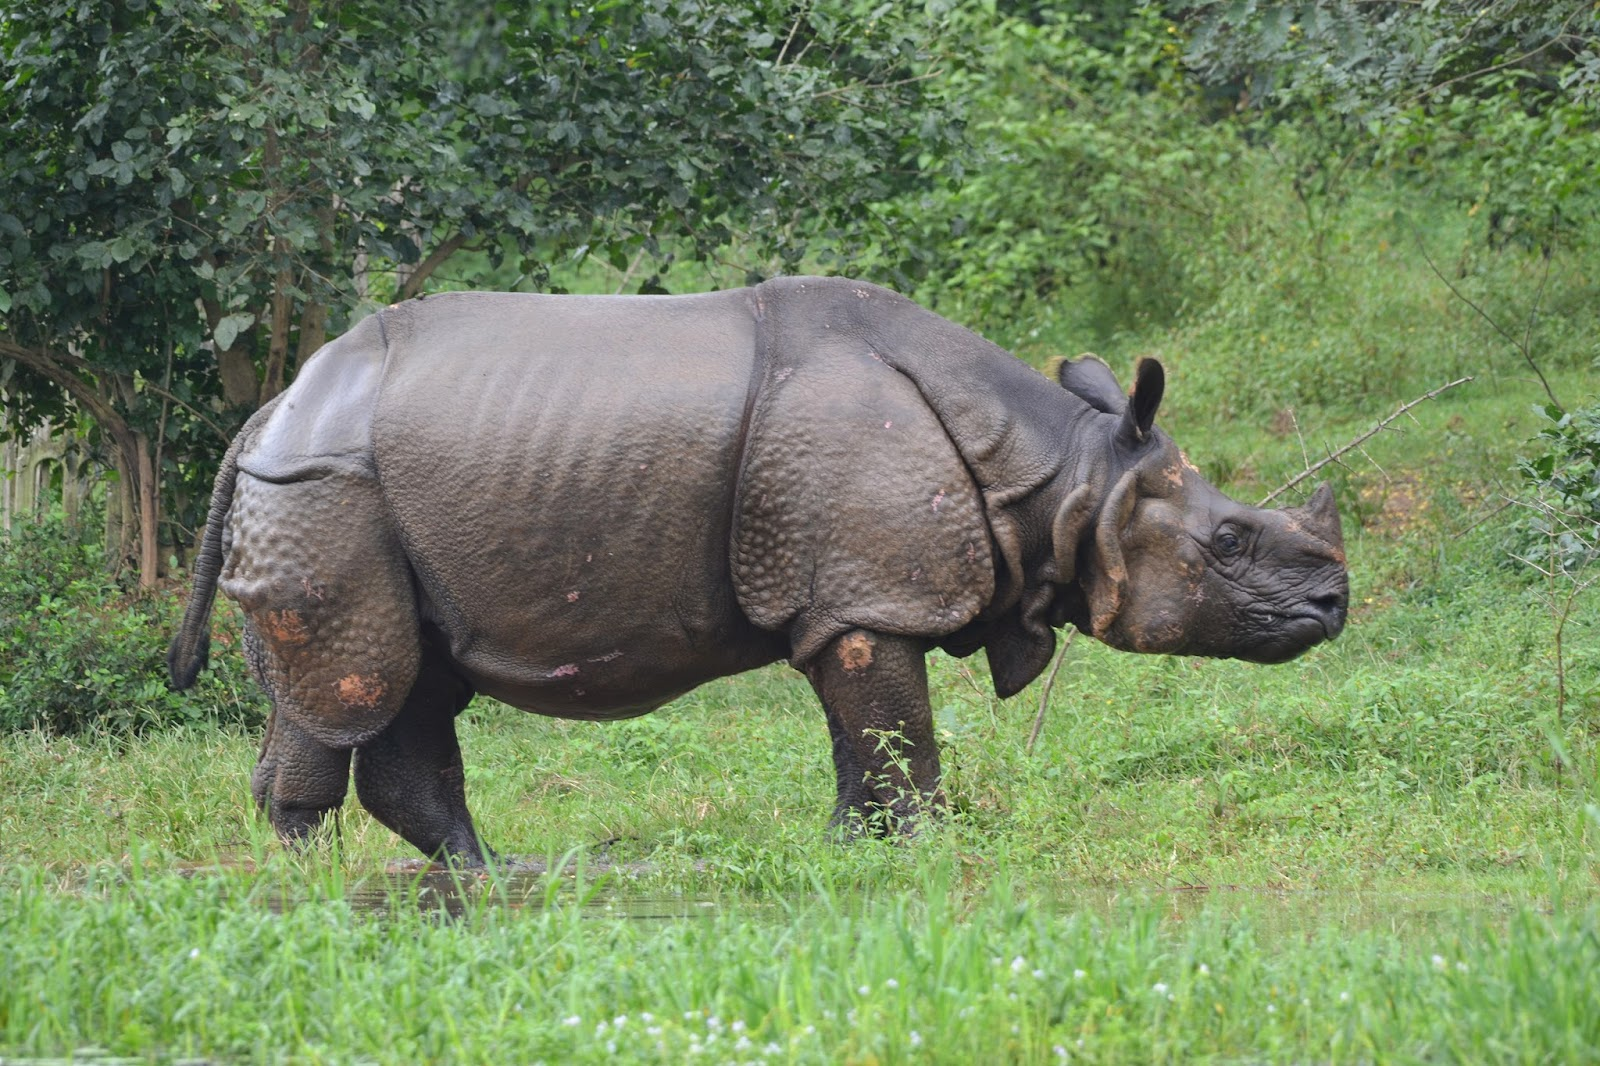 Rhinoceros at Nandankanan zoological park